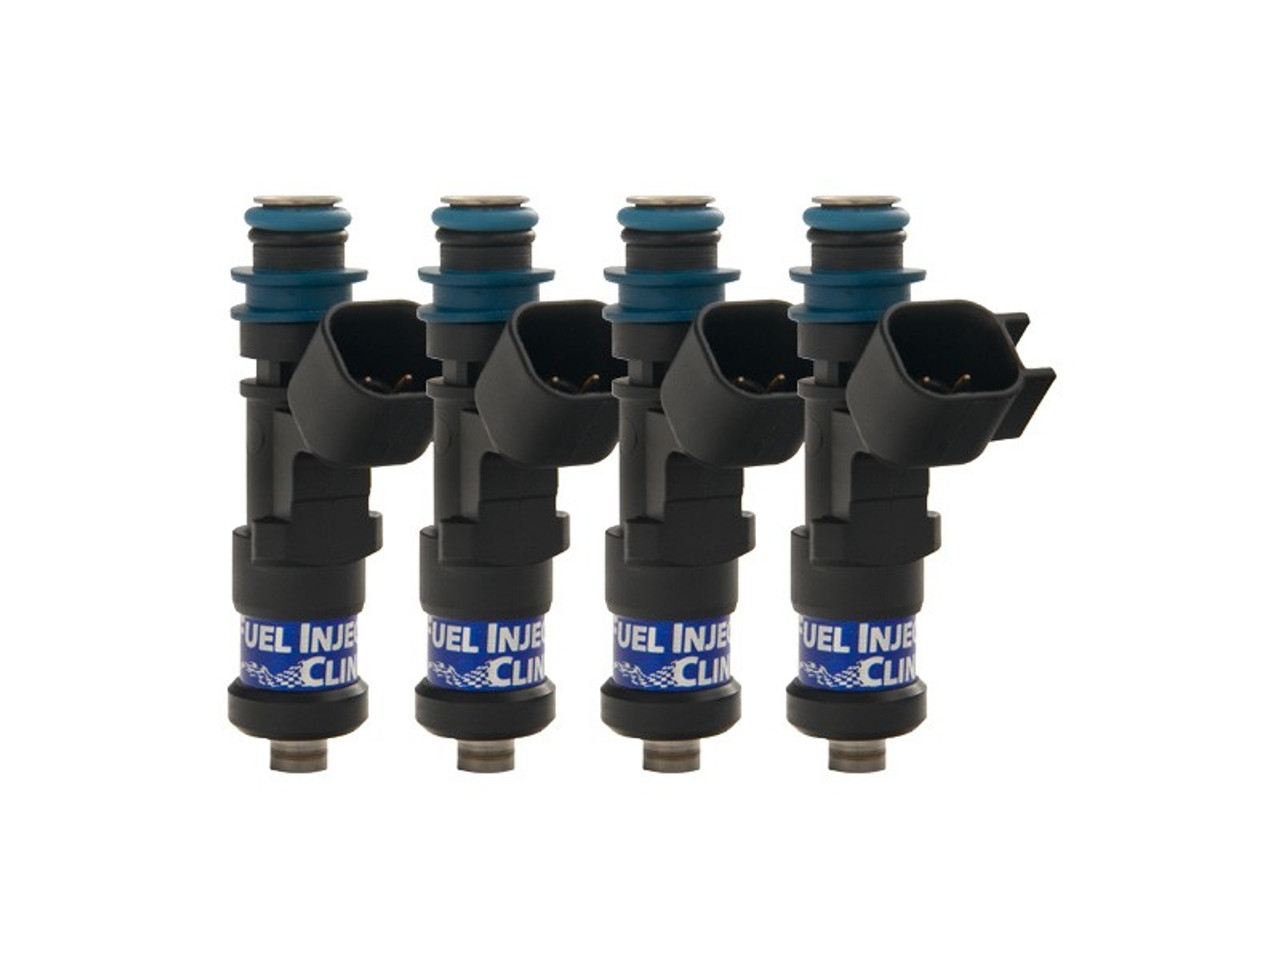 1000cc Subaru WRX('02-'14)/STI ('07+) Fuel Injector Clinic Injector Set (High-Z) (IS175-1000H)